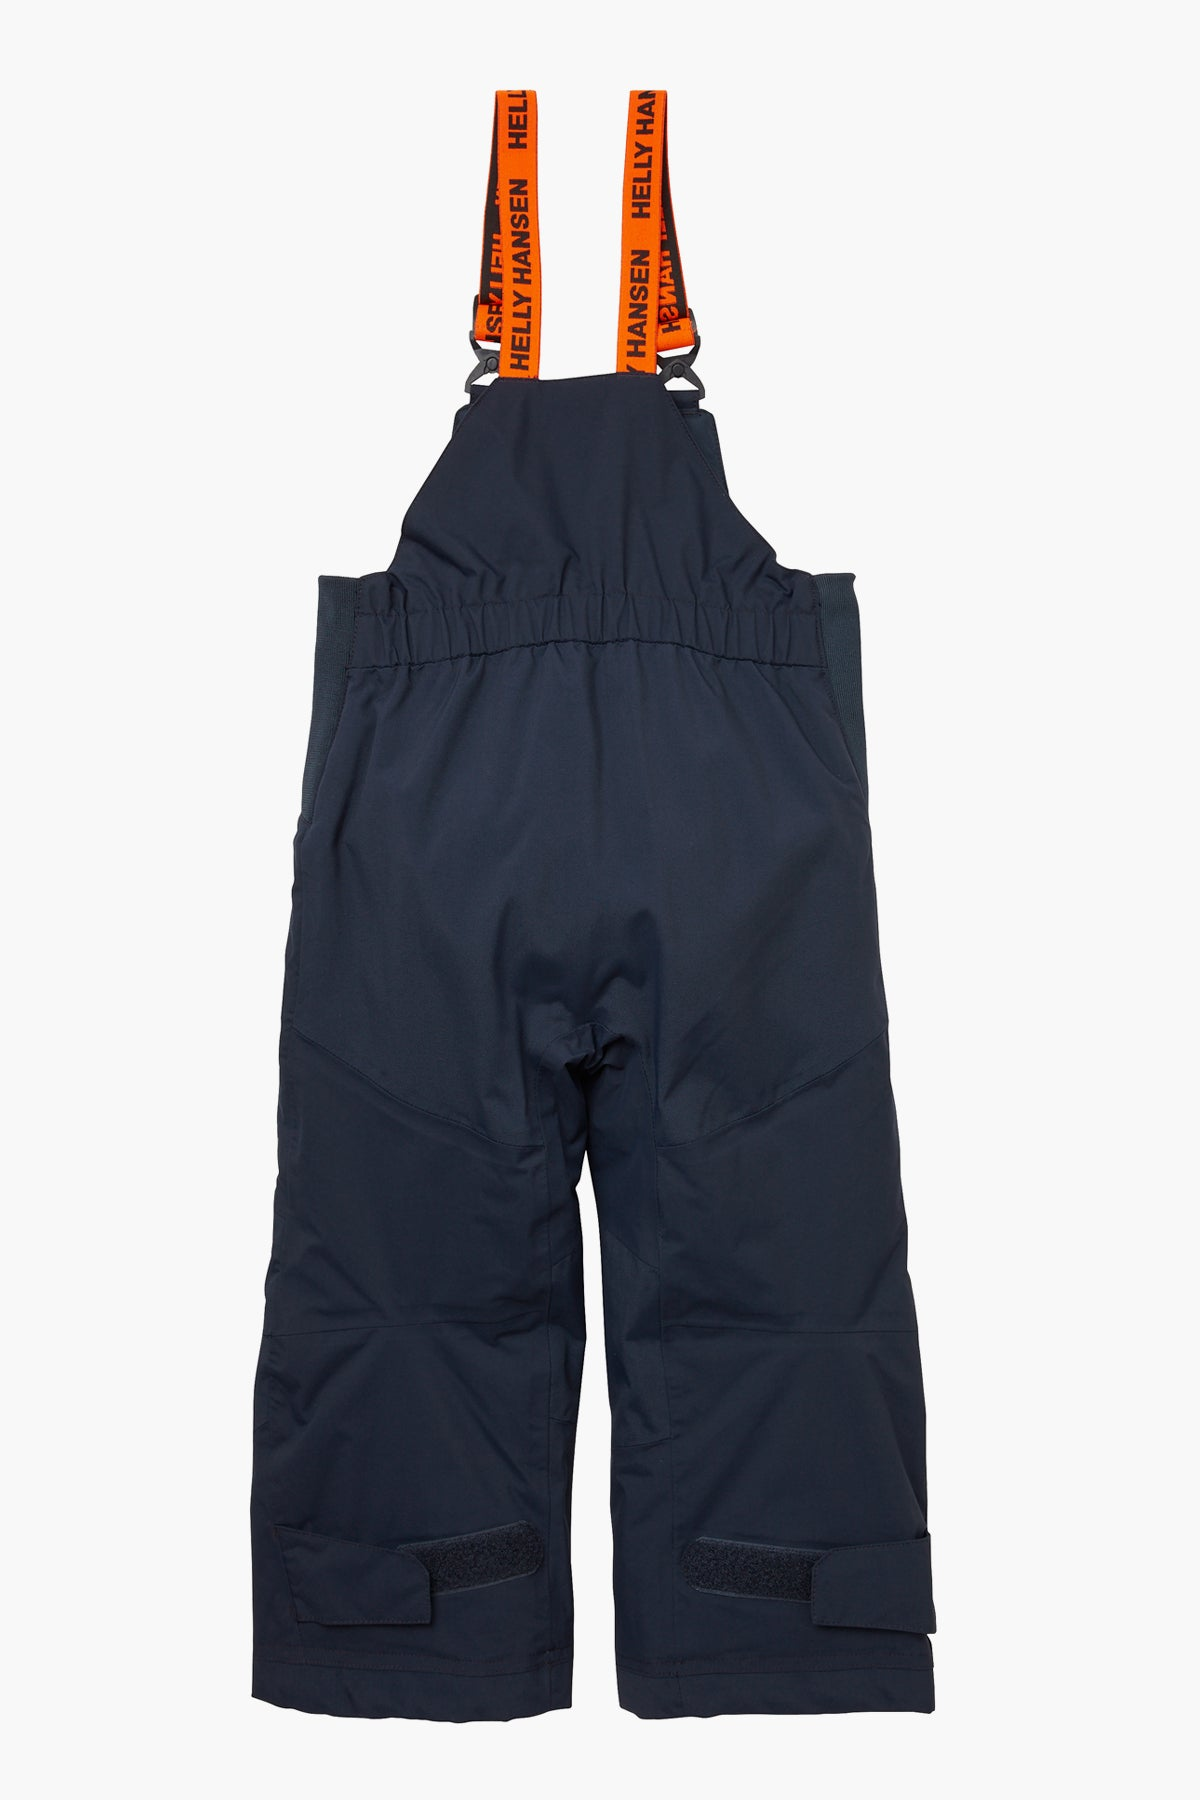 Helly Hansen Rider Bib Kids Snowpants - Navy